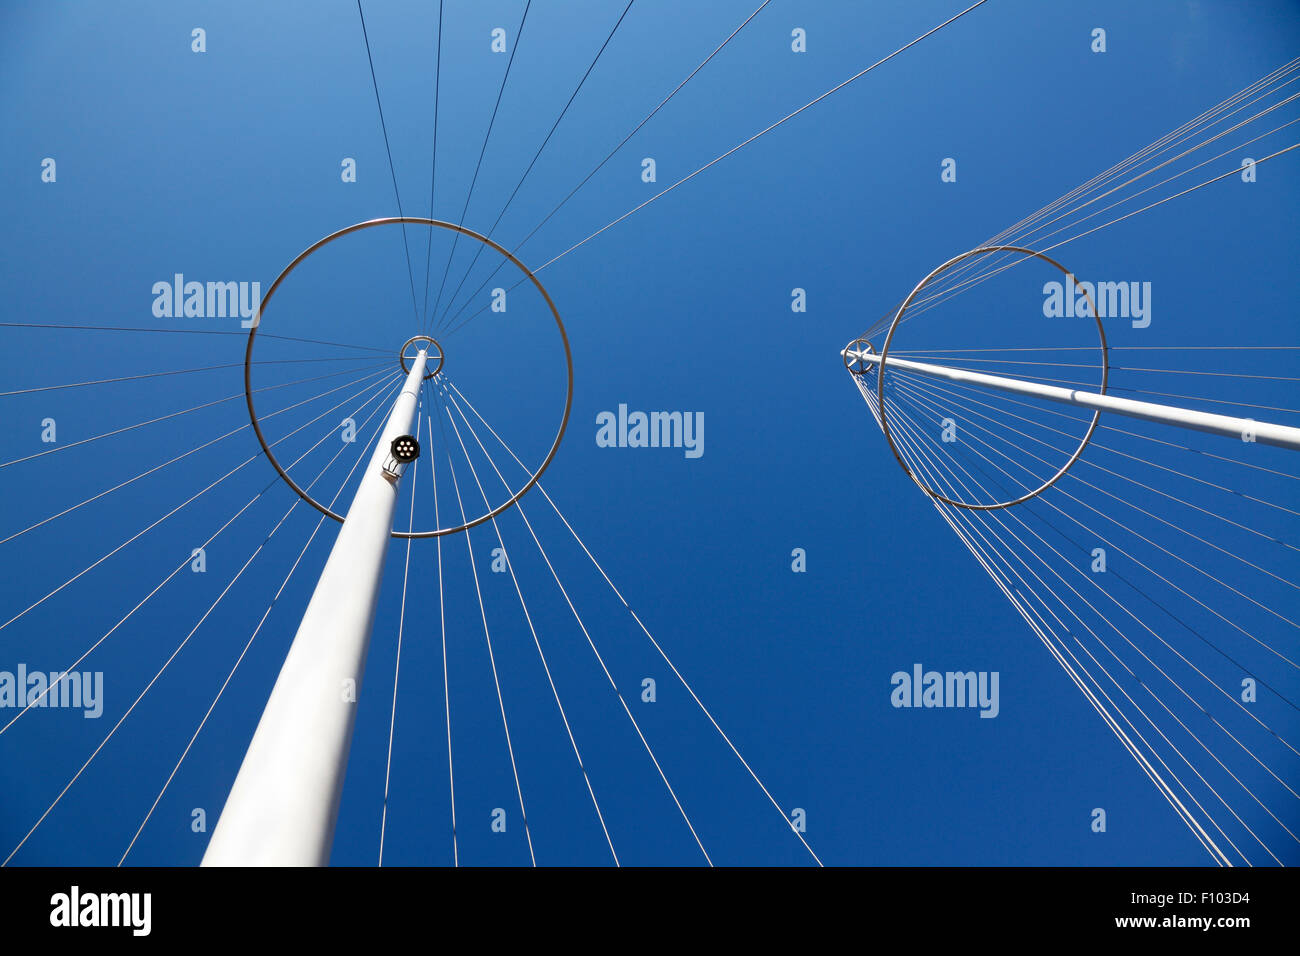 the-tall-masts-or-pylons-with-extending-